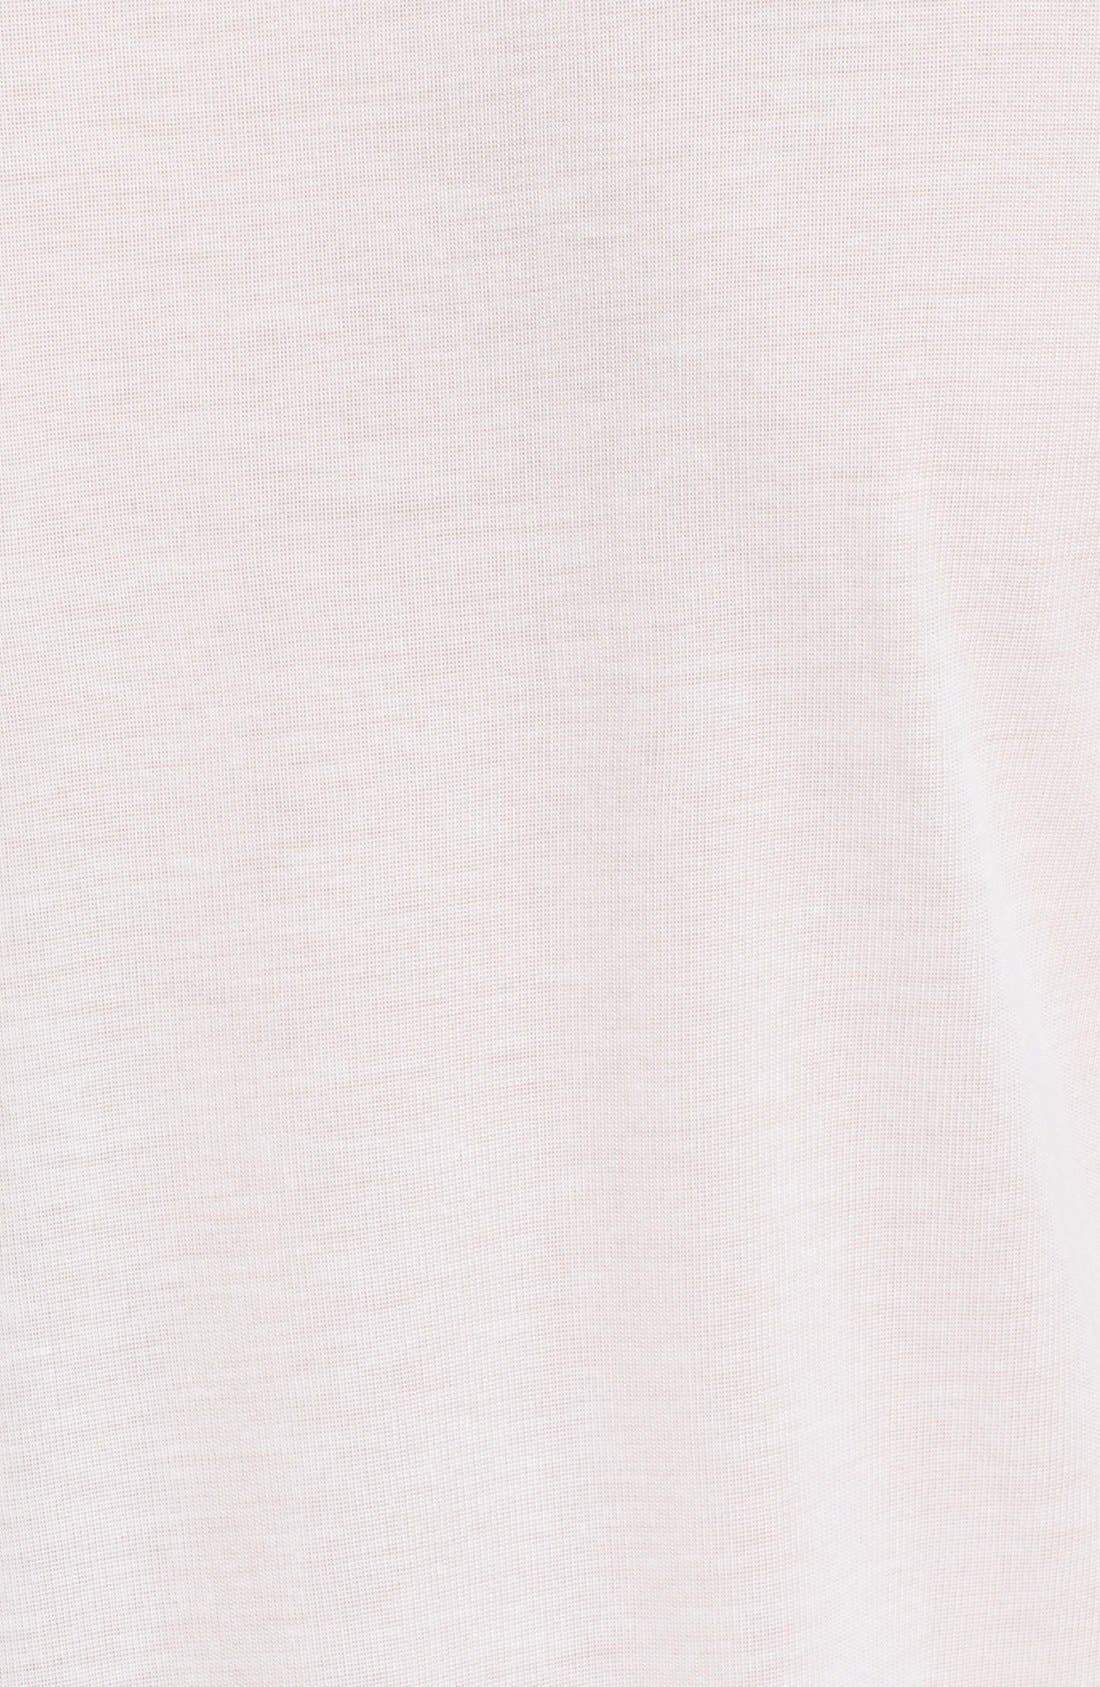 ZADIG & VOLTAIRE,                             'Tino' Foil Accent Tee,                             Alternate thumbnail 3, color,                             116